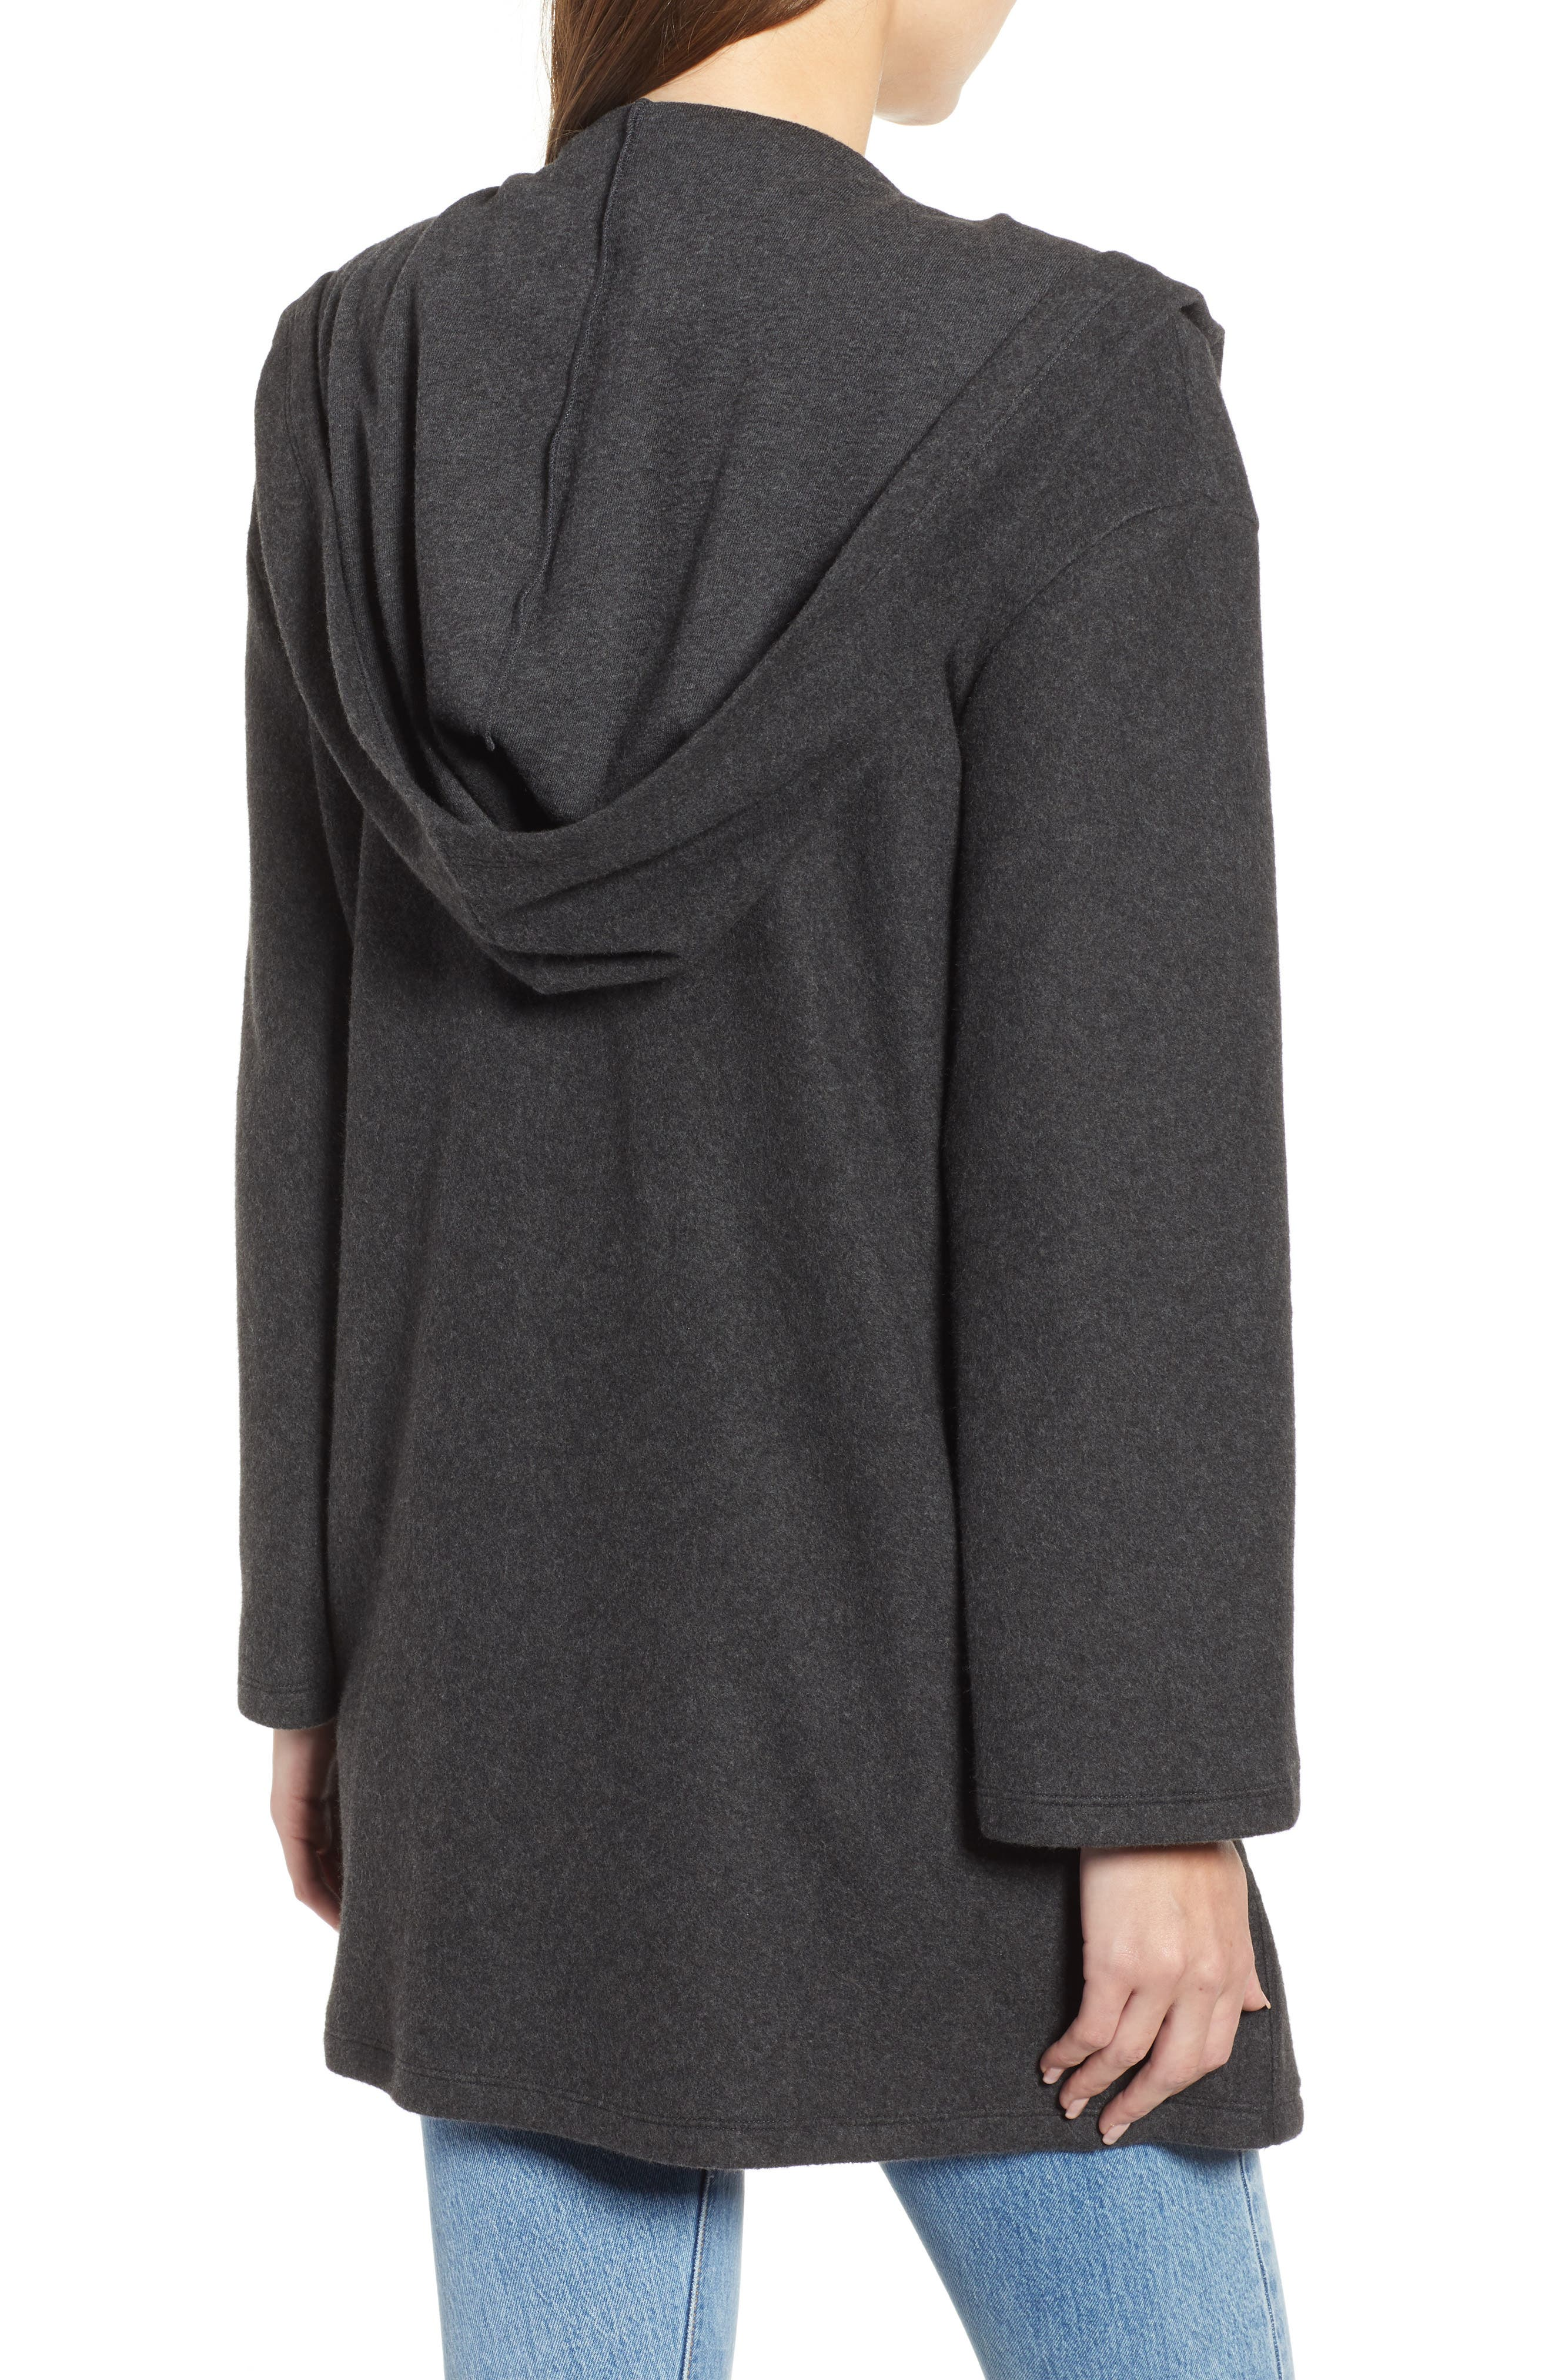 Hooded Open Front Cardigan,                             Alternate thumbnail 2, color,                             GREY DARK CHARCOAL HEATHER